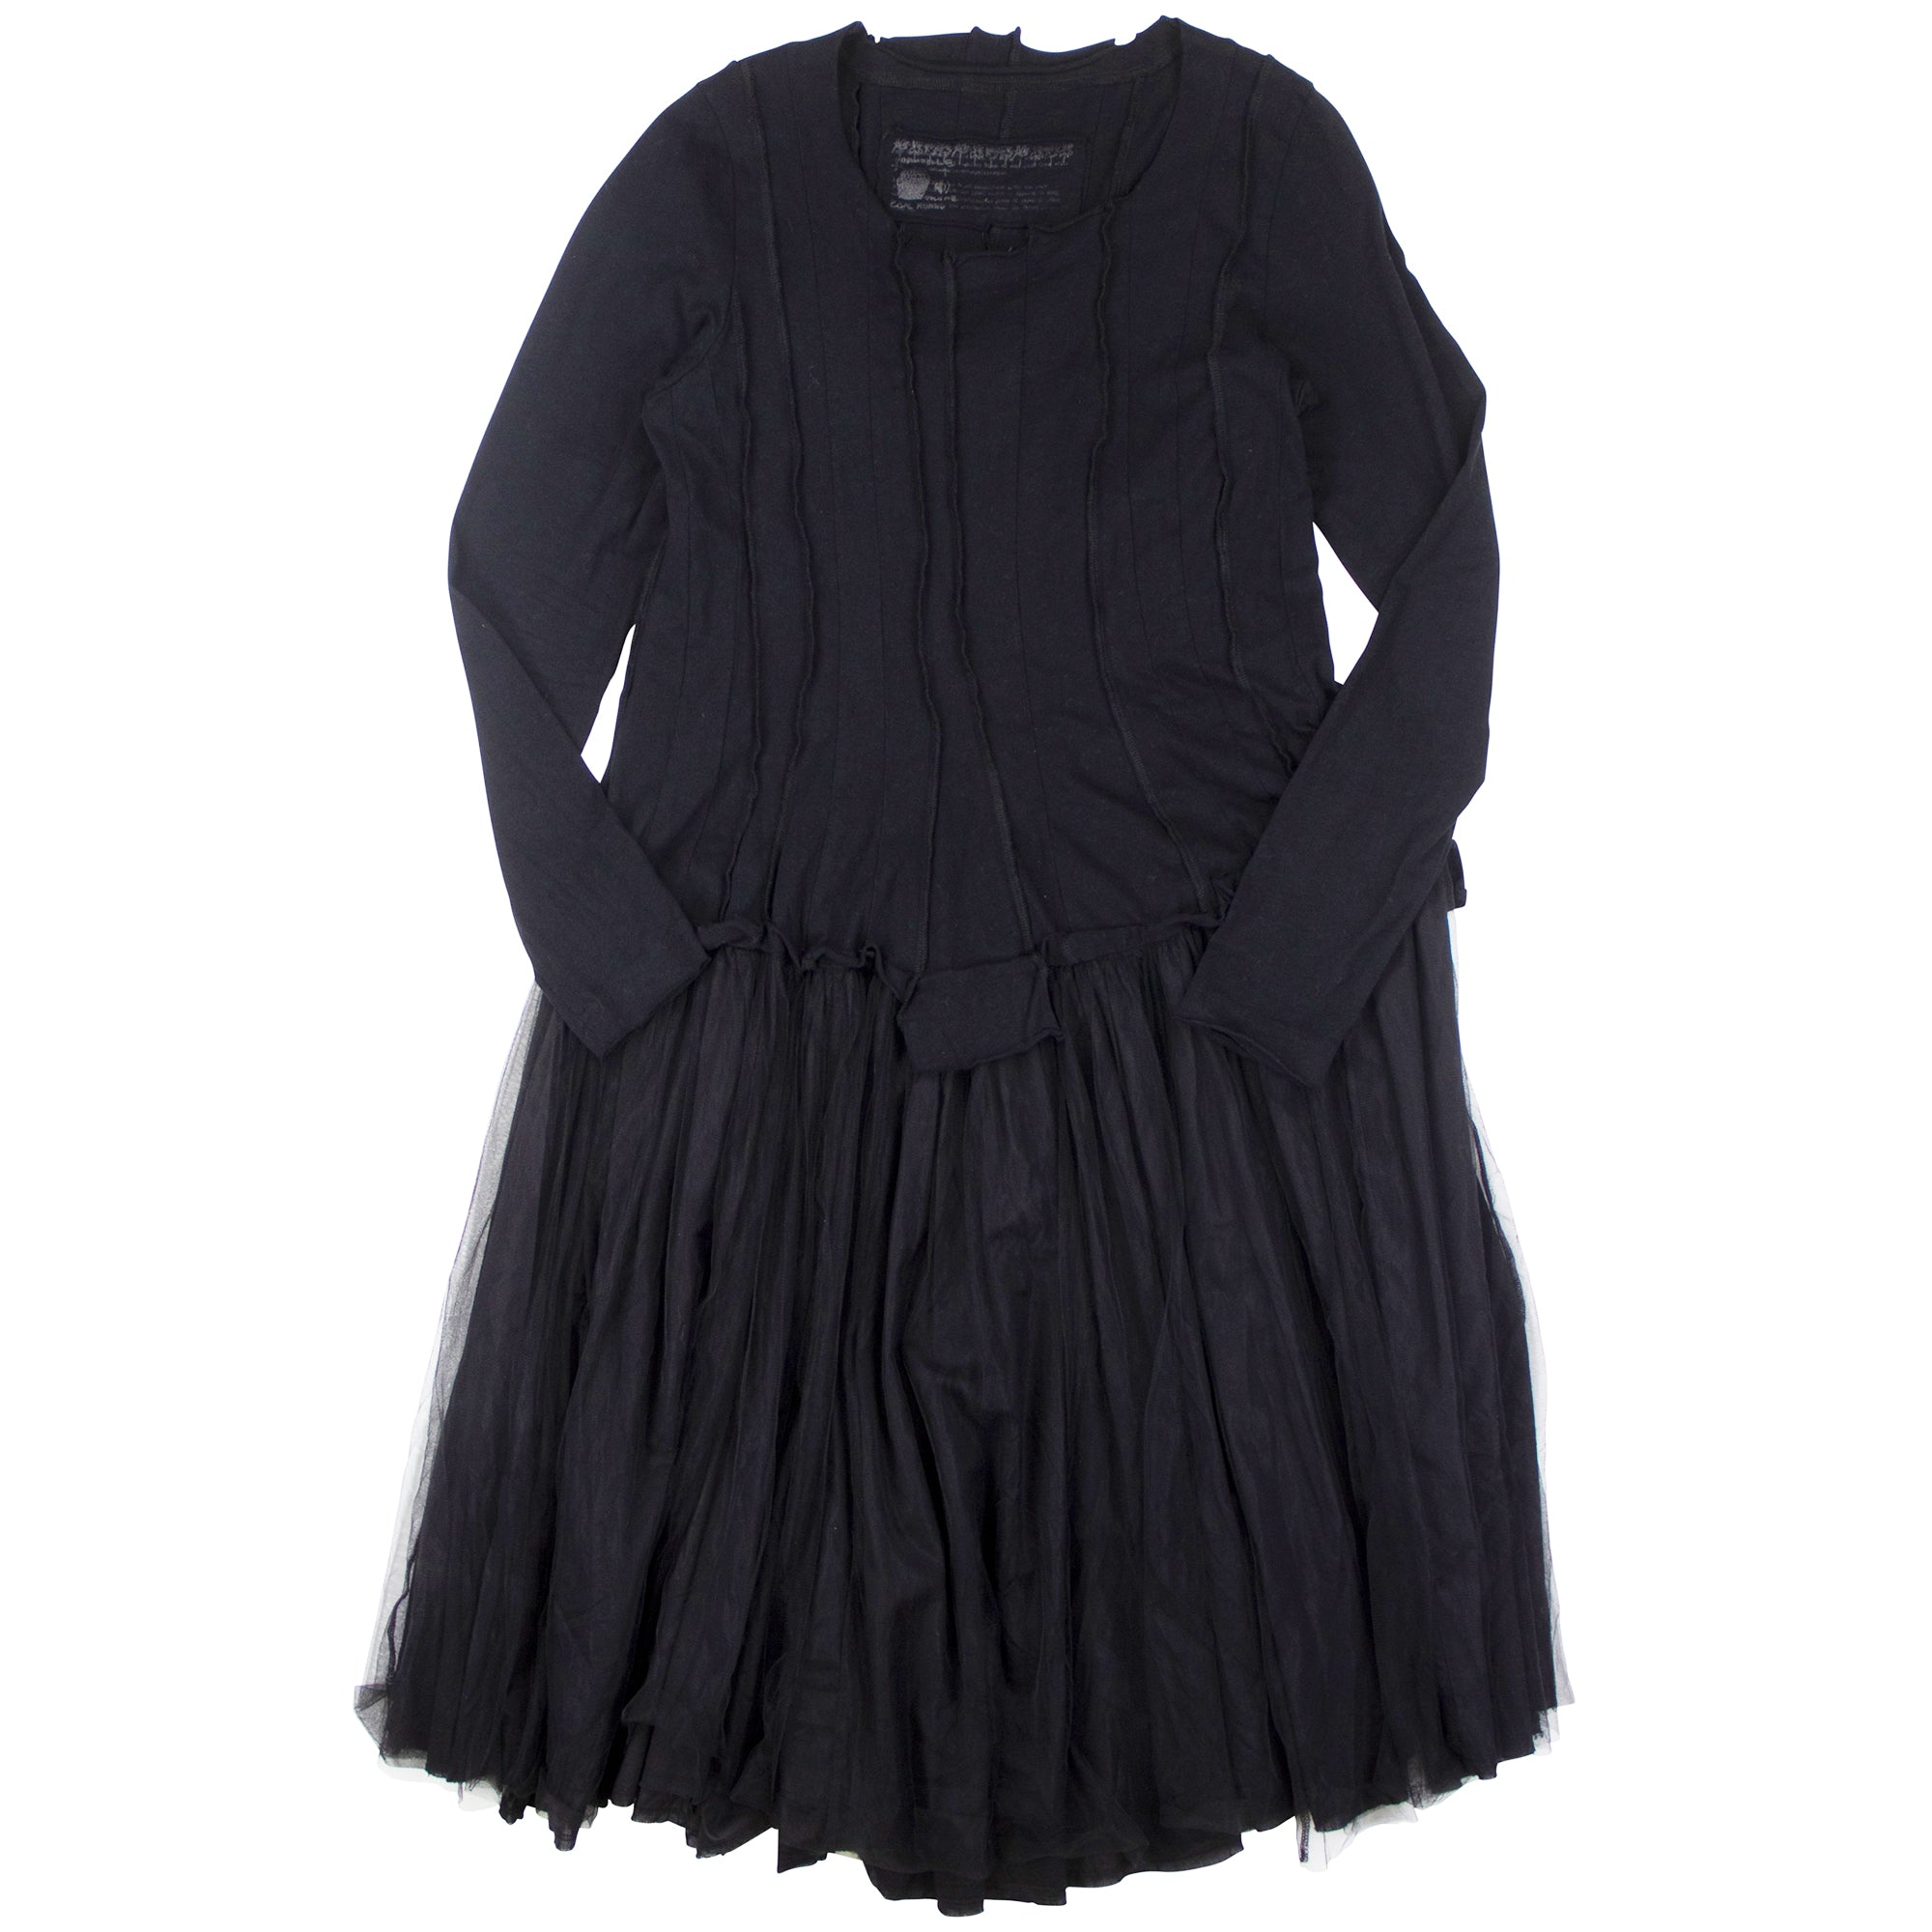 Rundholz Tulle Layered Dress in Black